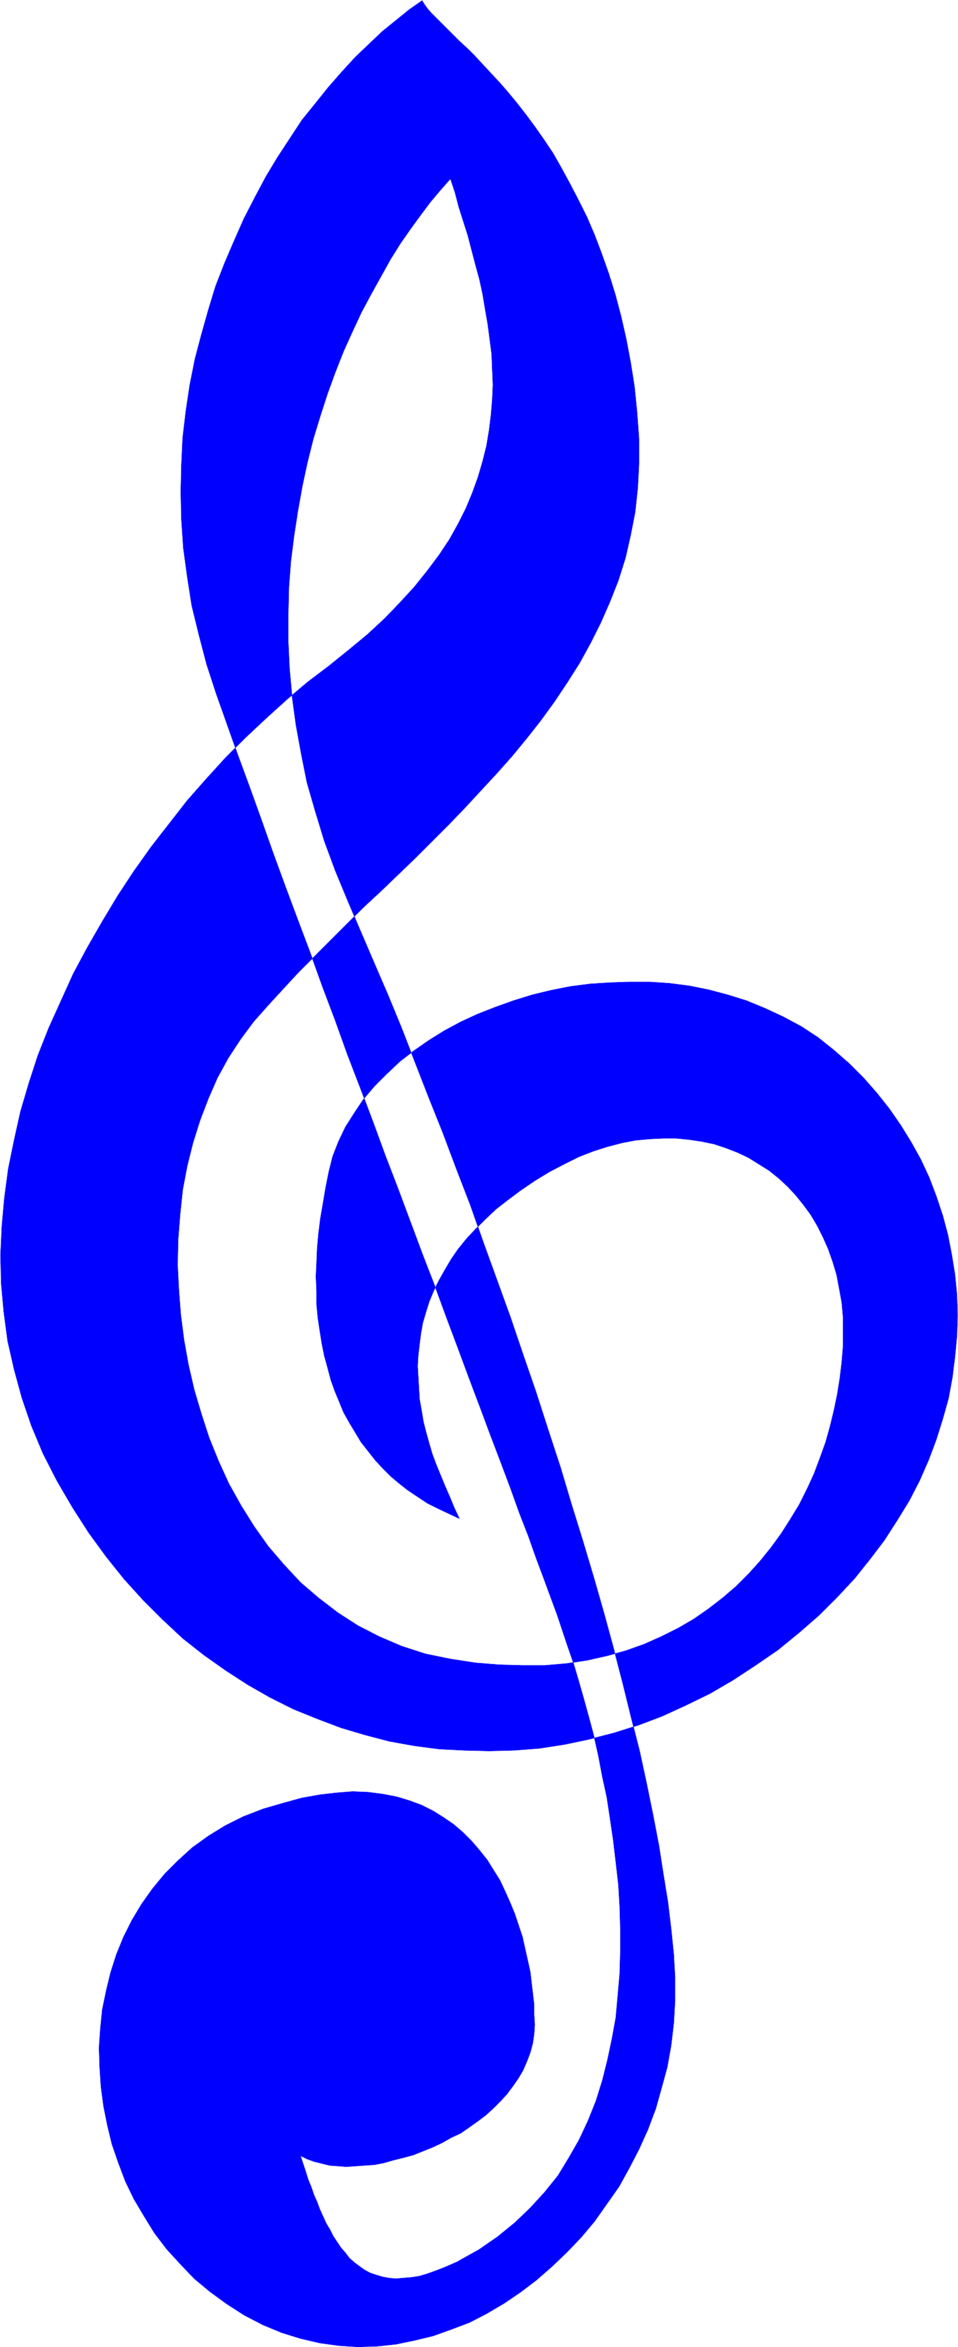 Trebel Clef Free Stock Photo Illustration Of A Blue Treble Clef